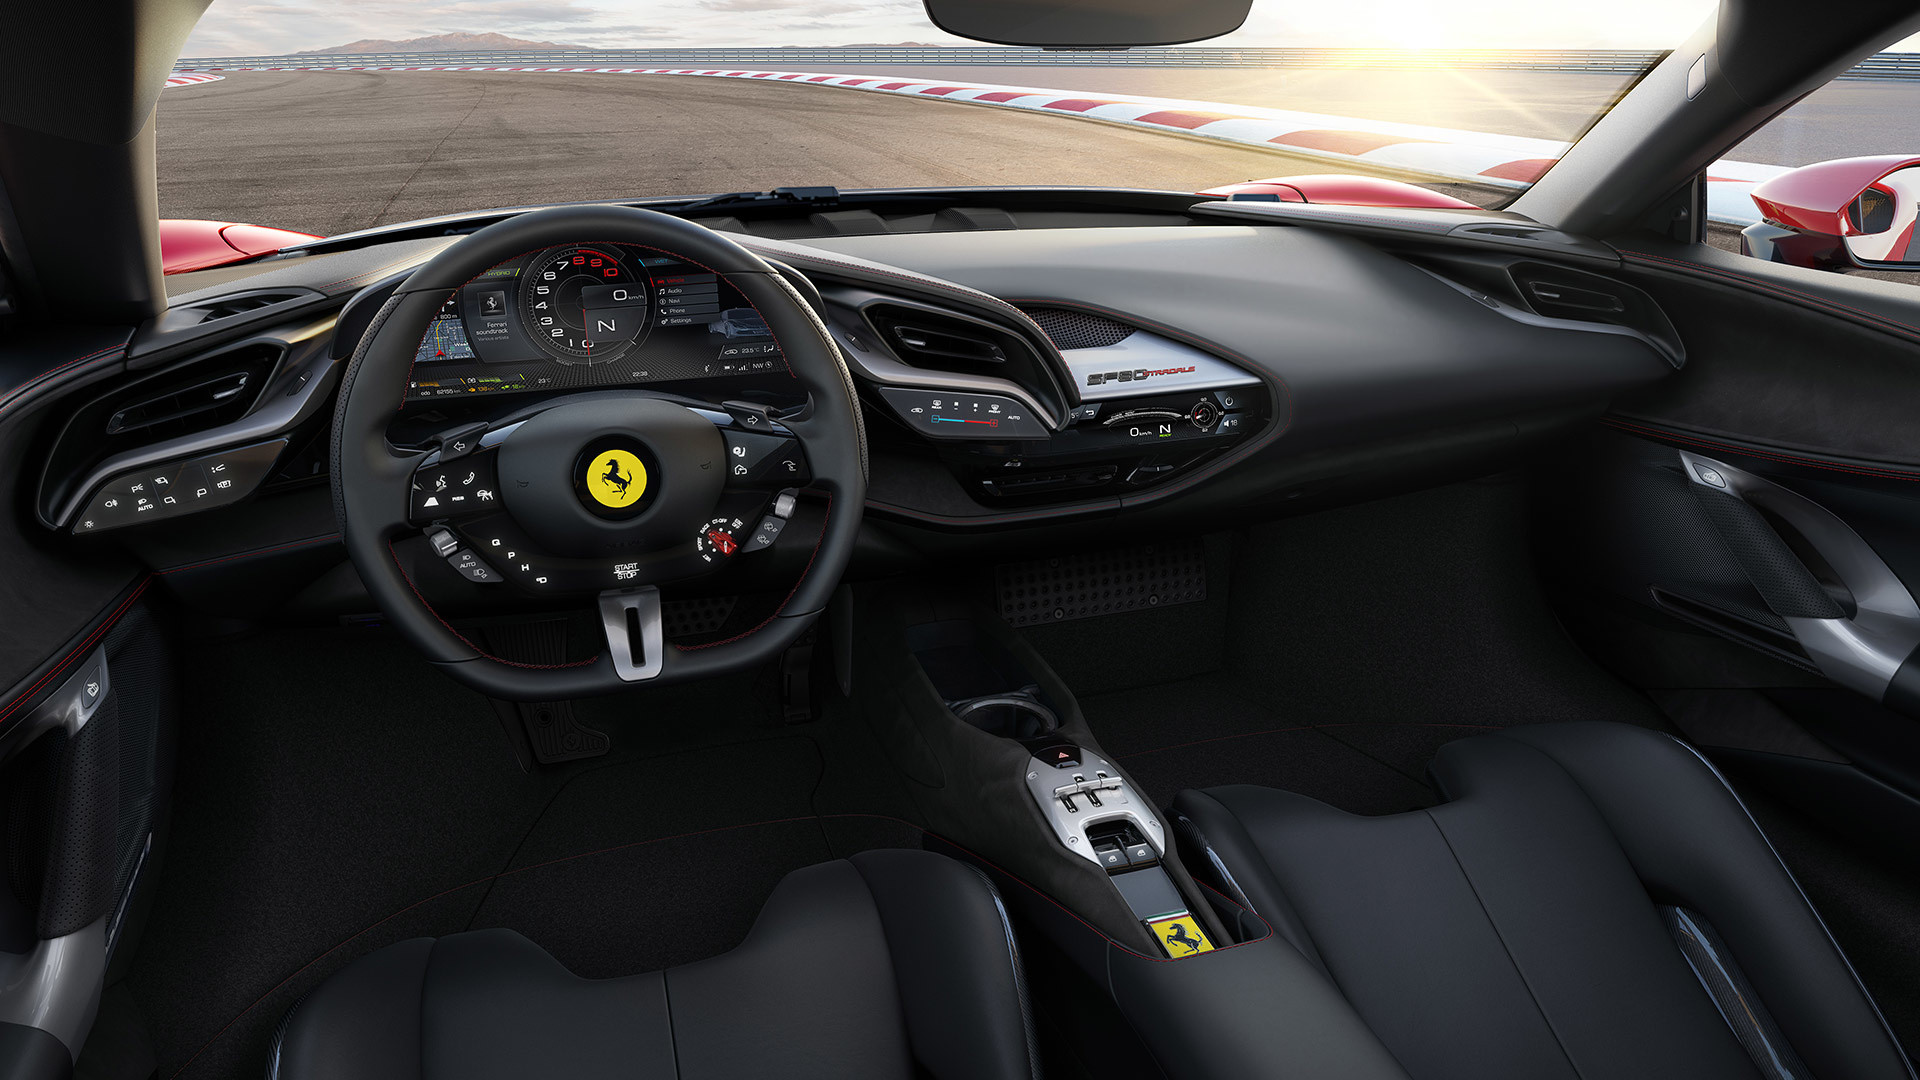 Ferrari has debuted the SF90 Stradale, the company's first plug-in hybrid super car and its first four-wheel drive vehicle